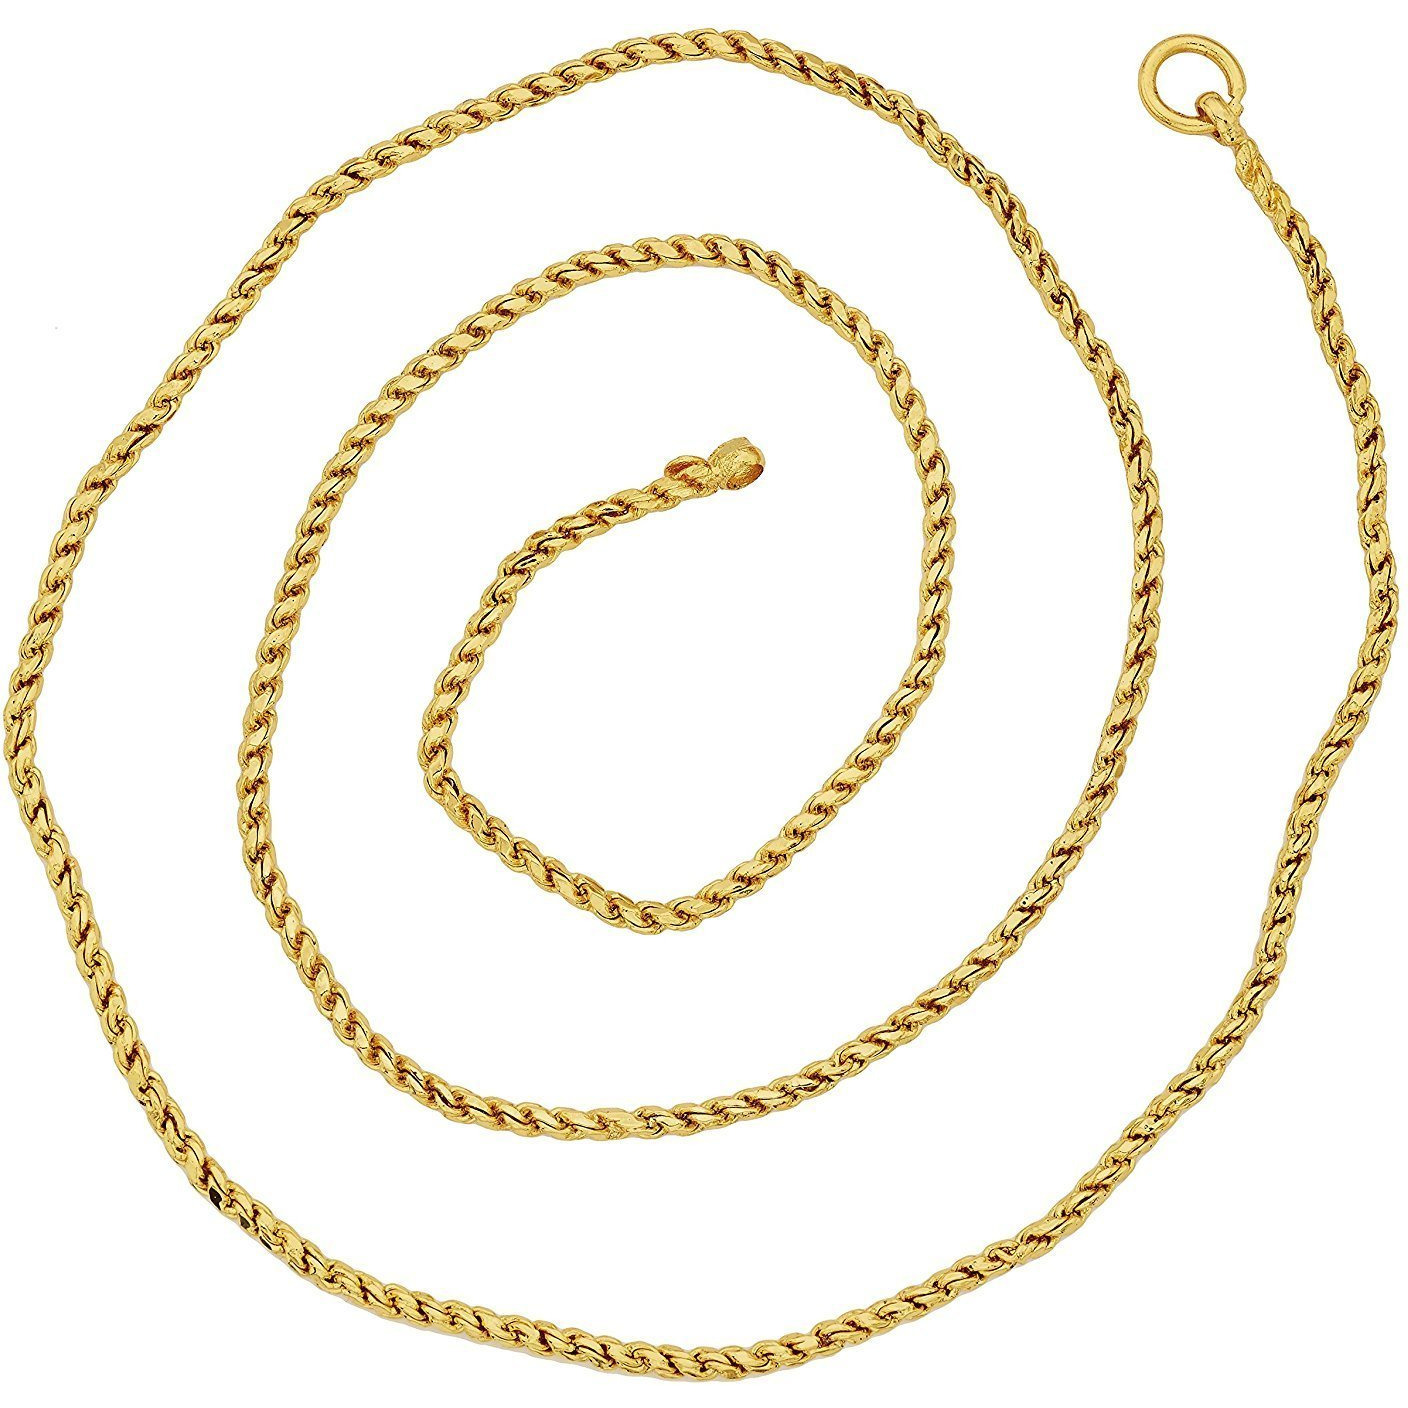 Zivom Solid Rope 22K Gold Plated 23.5 In Chain For Unisex